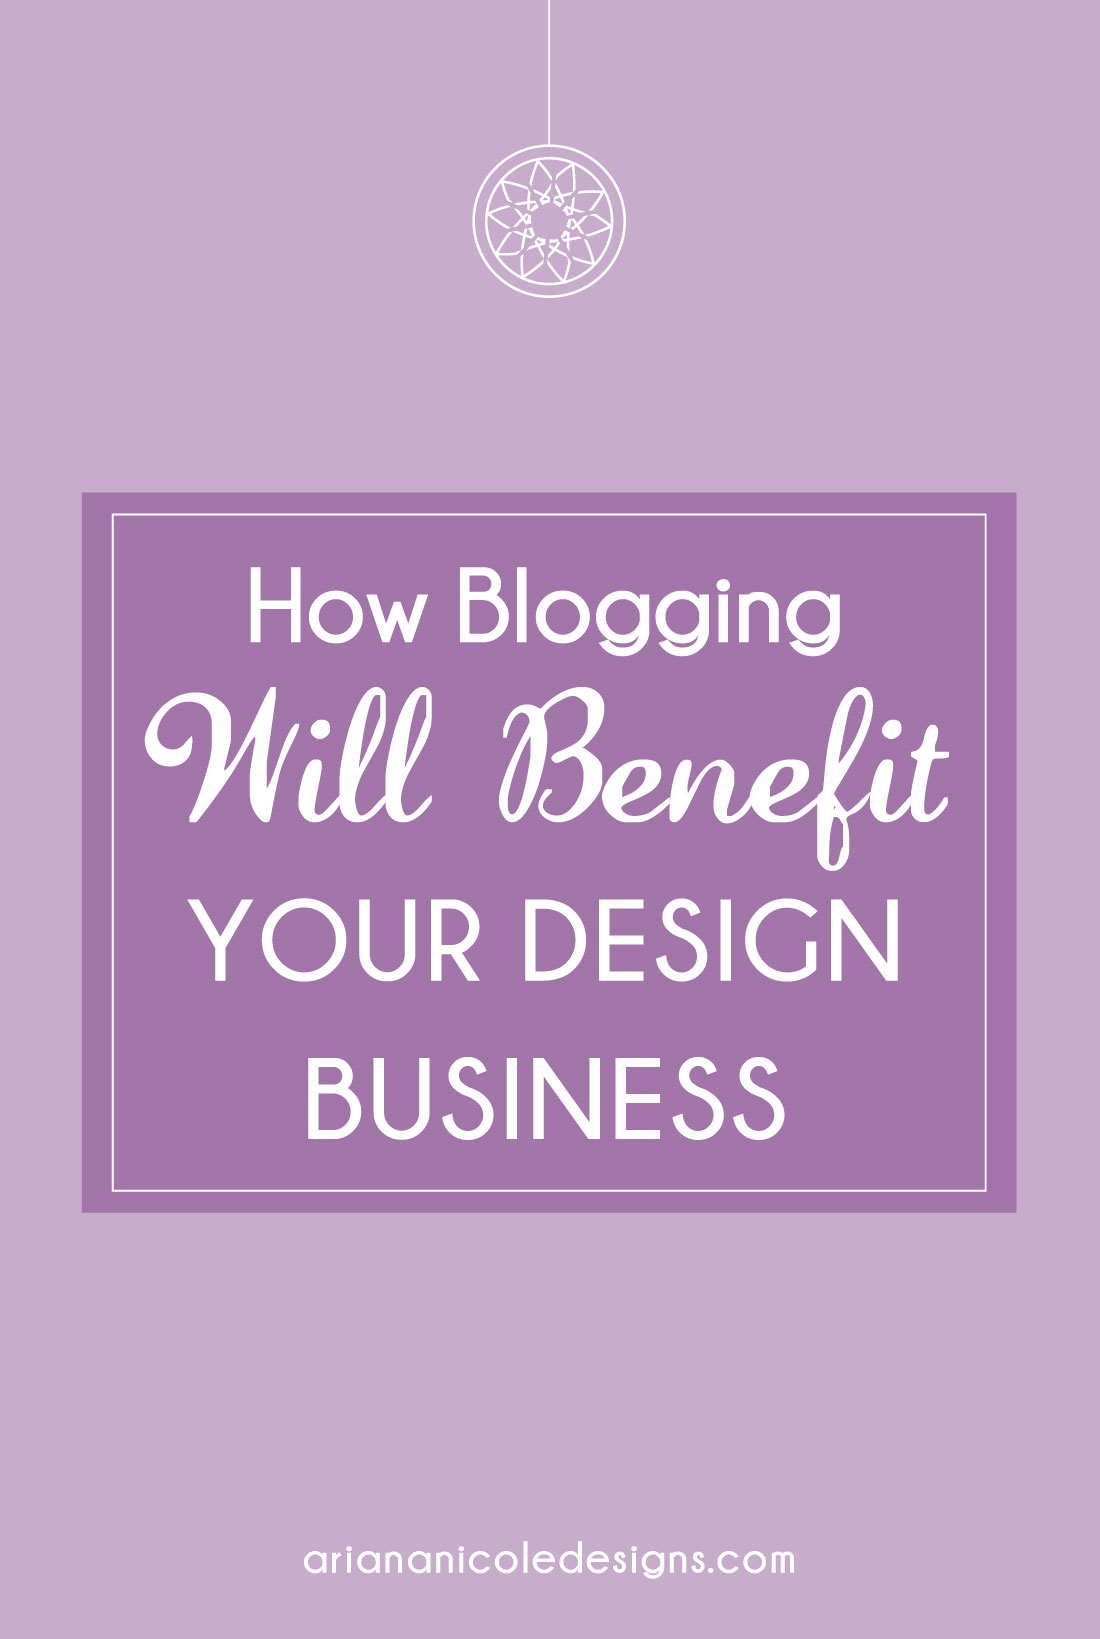 How_Blogging_Will_Benefit_Your_Business-1100